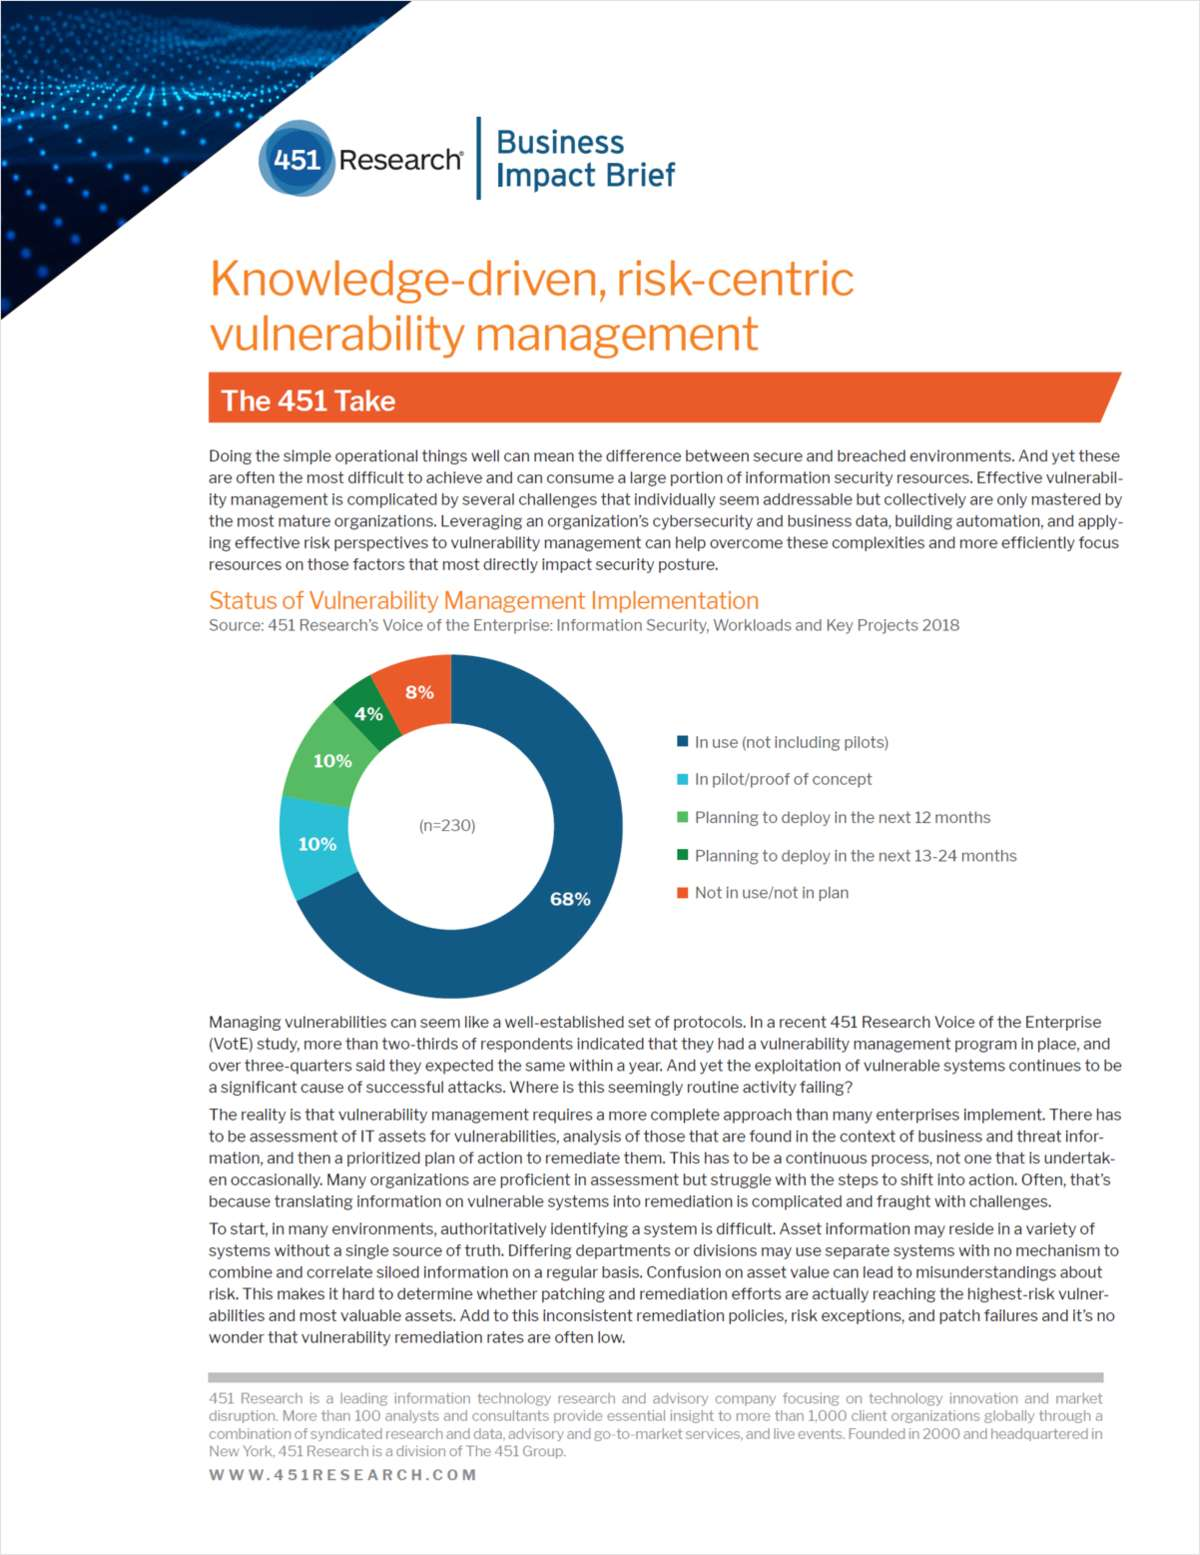 Knowledge-Driven, Risk-Centric Vulnerability Management, Free